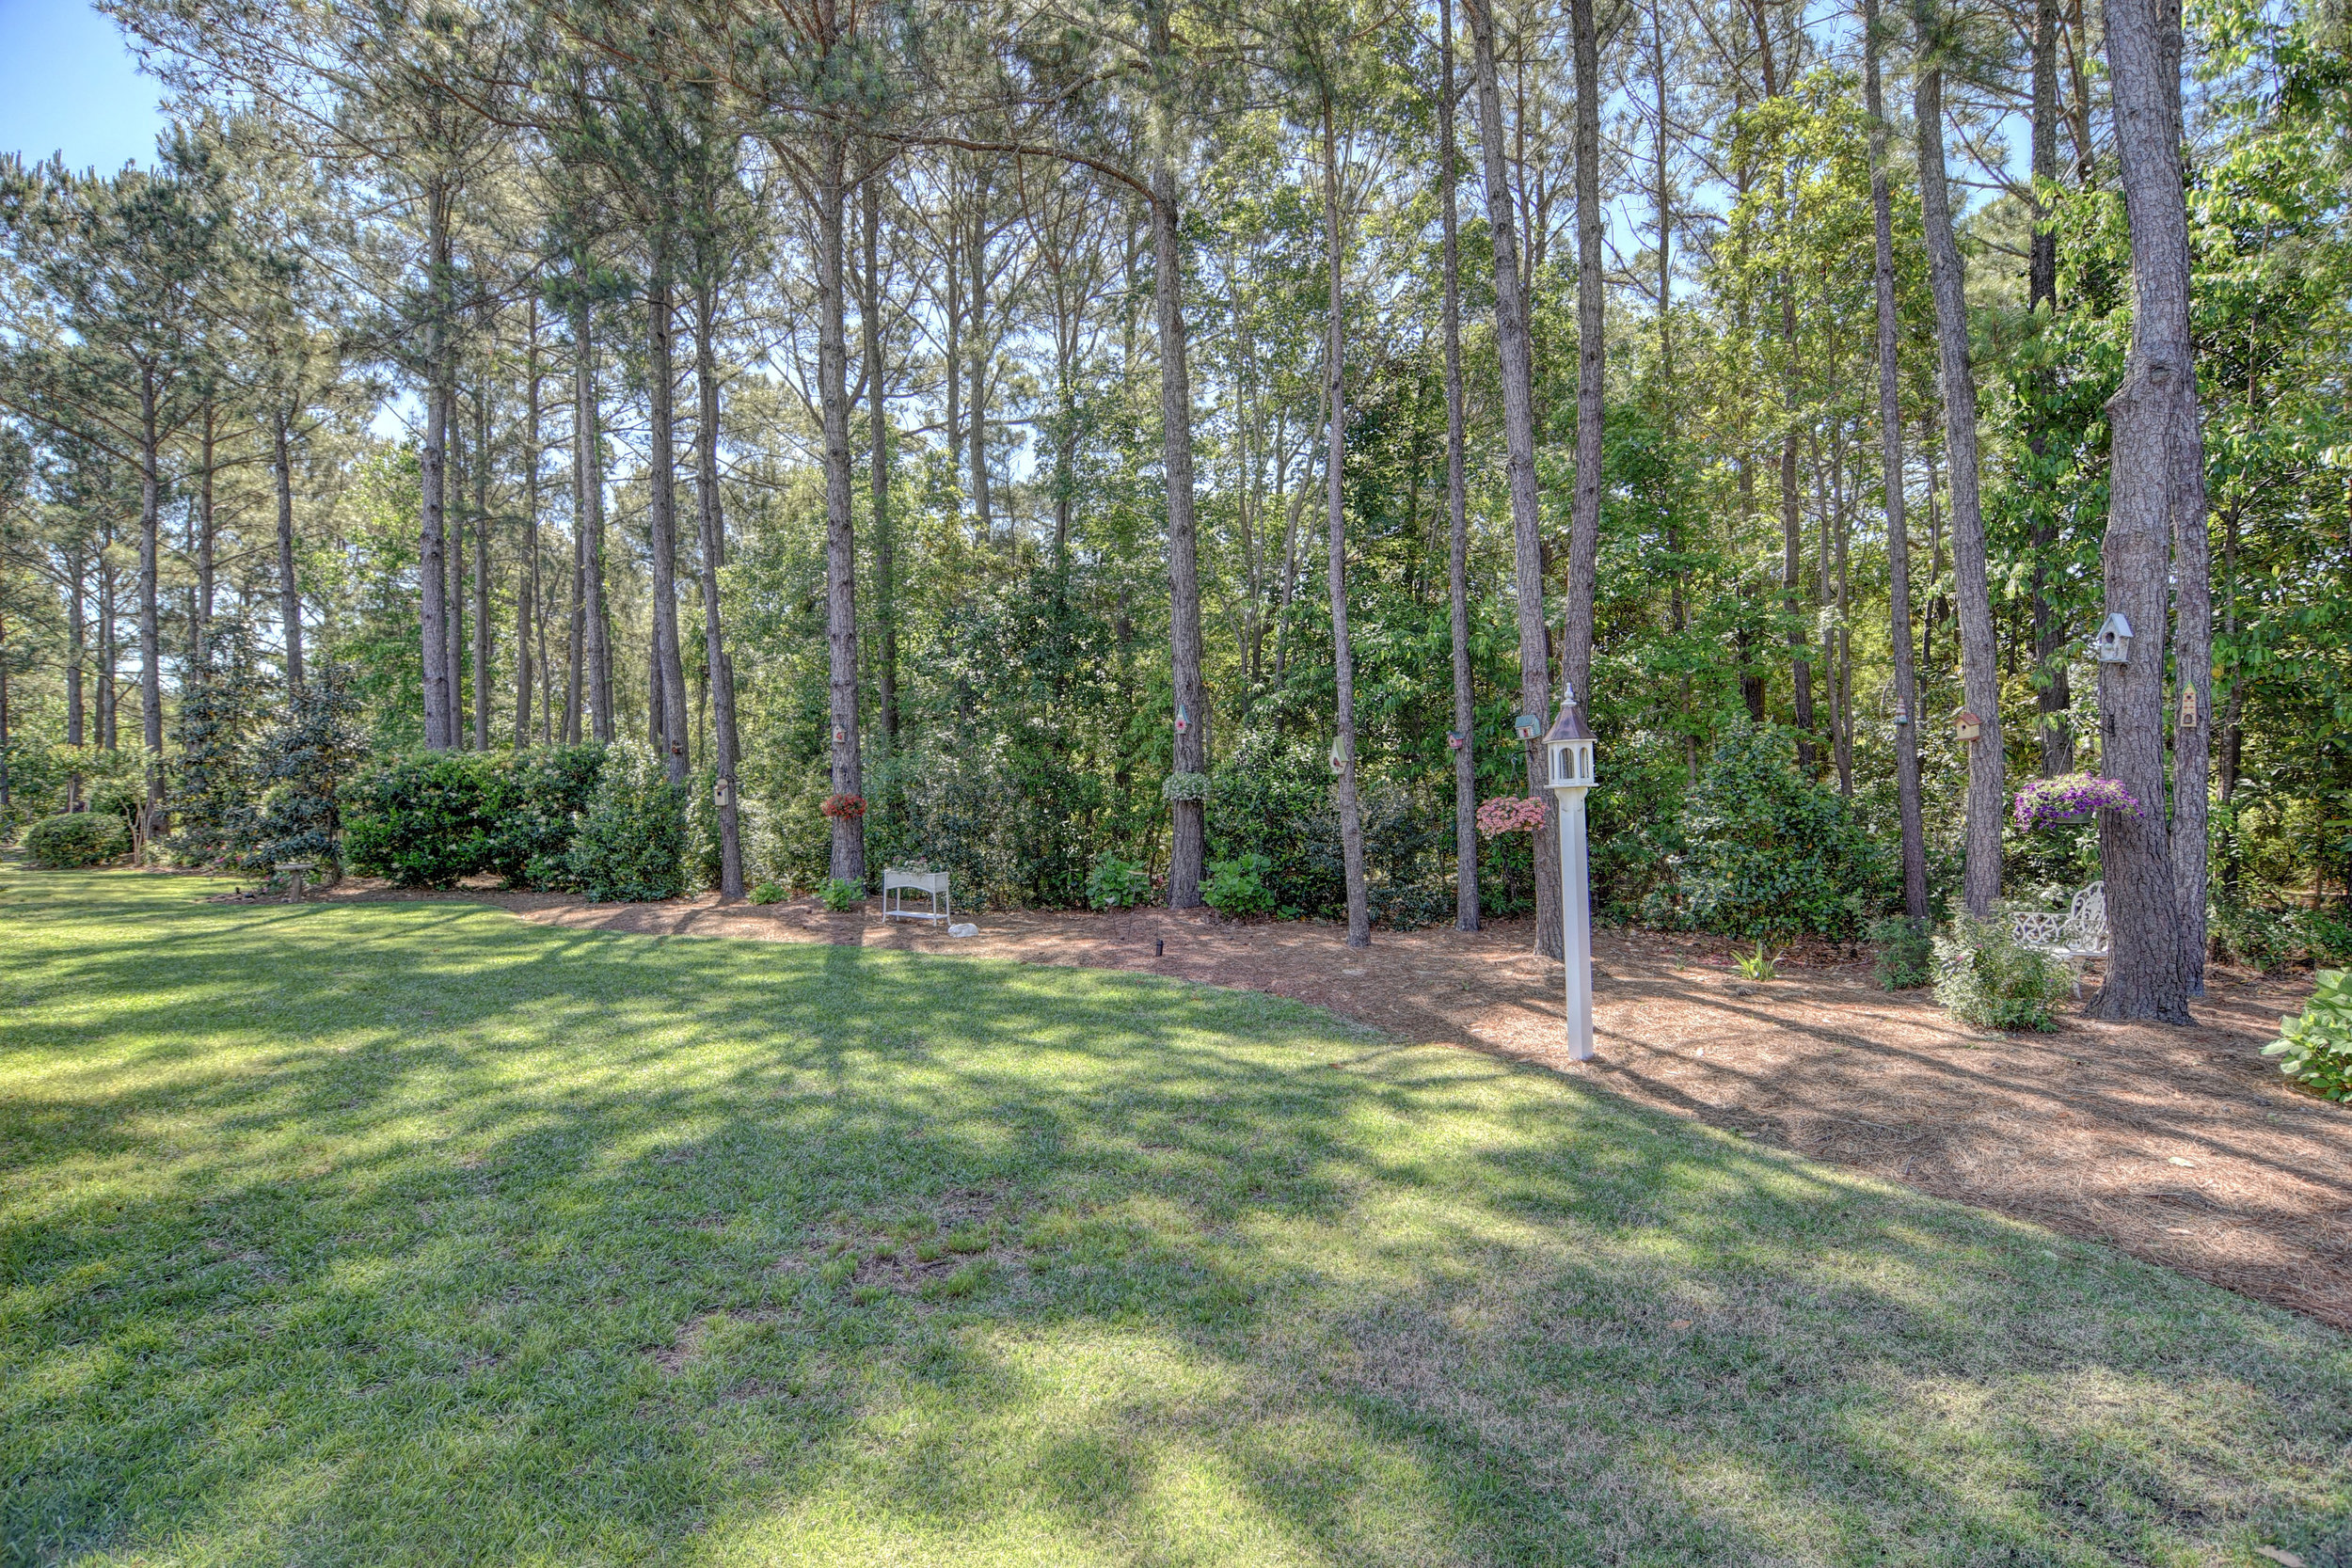 2114 Bay Colony Ln Wilmington-print-031-29-Rear yard-4200x2802-300dpi.jpg